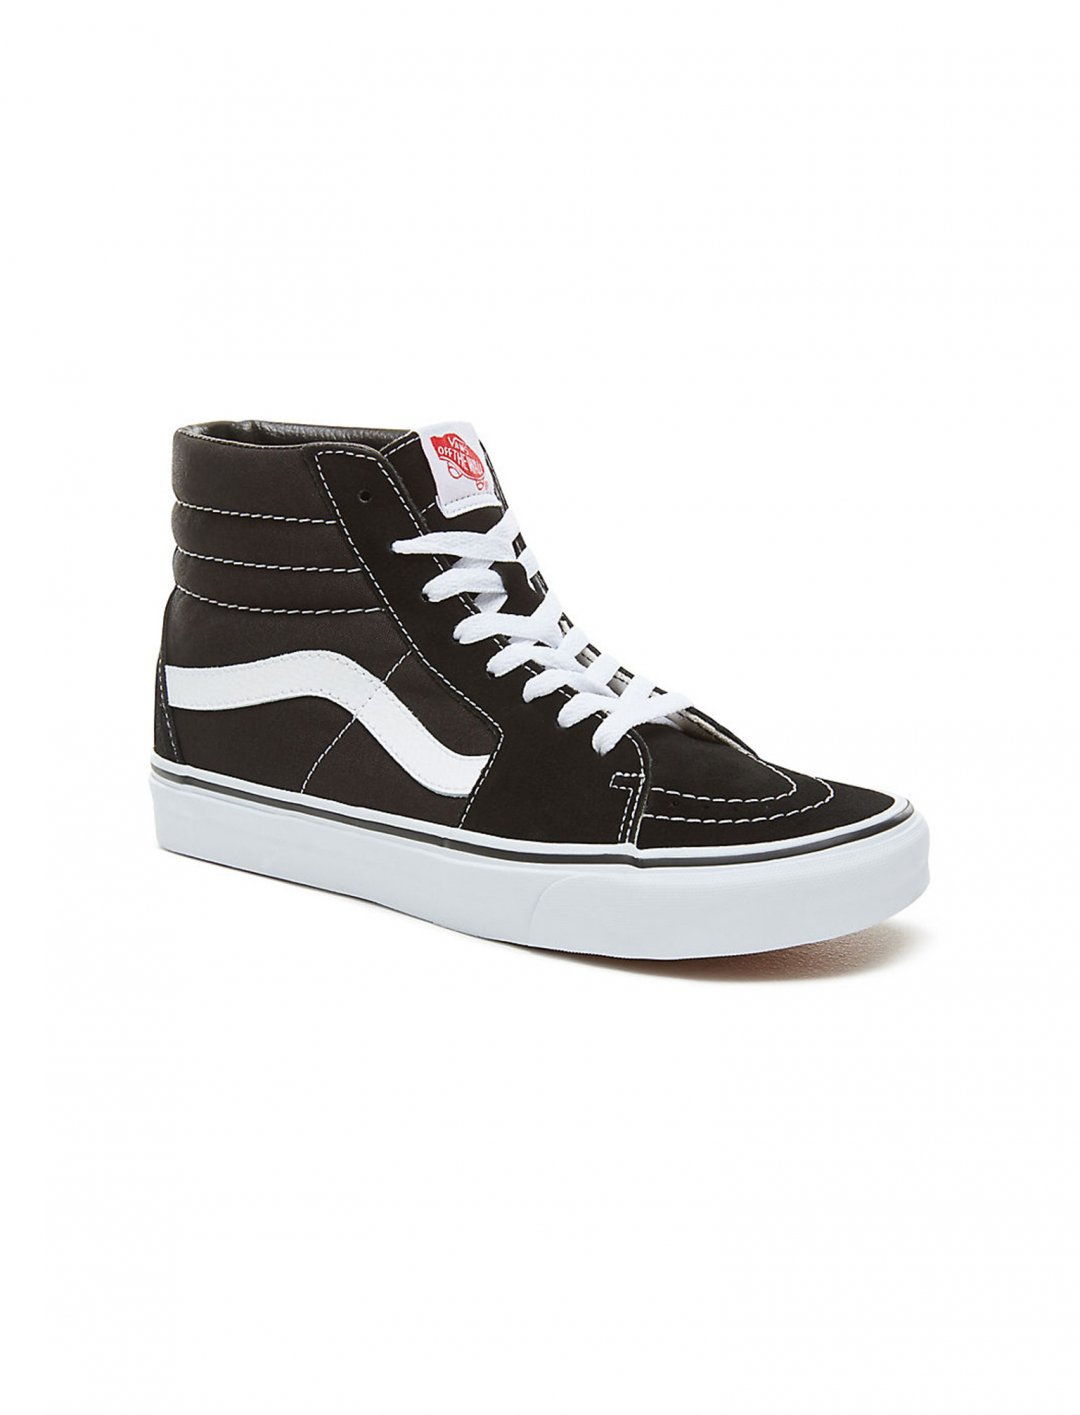 "Sk-8 Hi Shoes {""id"":12,""product_section_id"":1,""name"":""Shoes"",""order"":12} Vans"